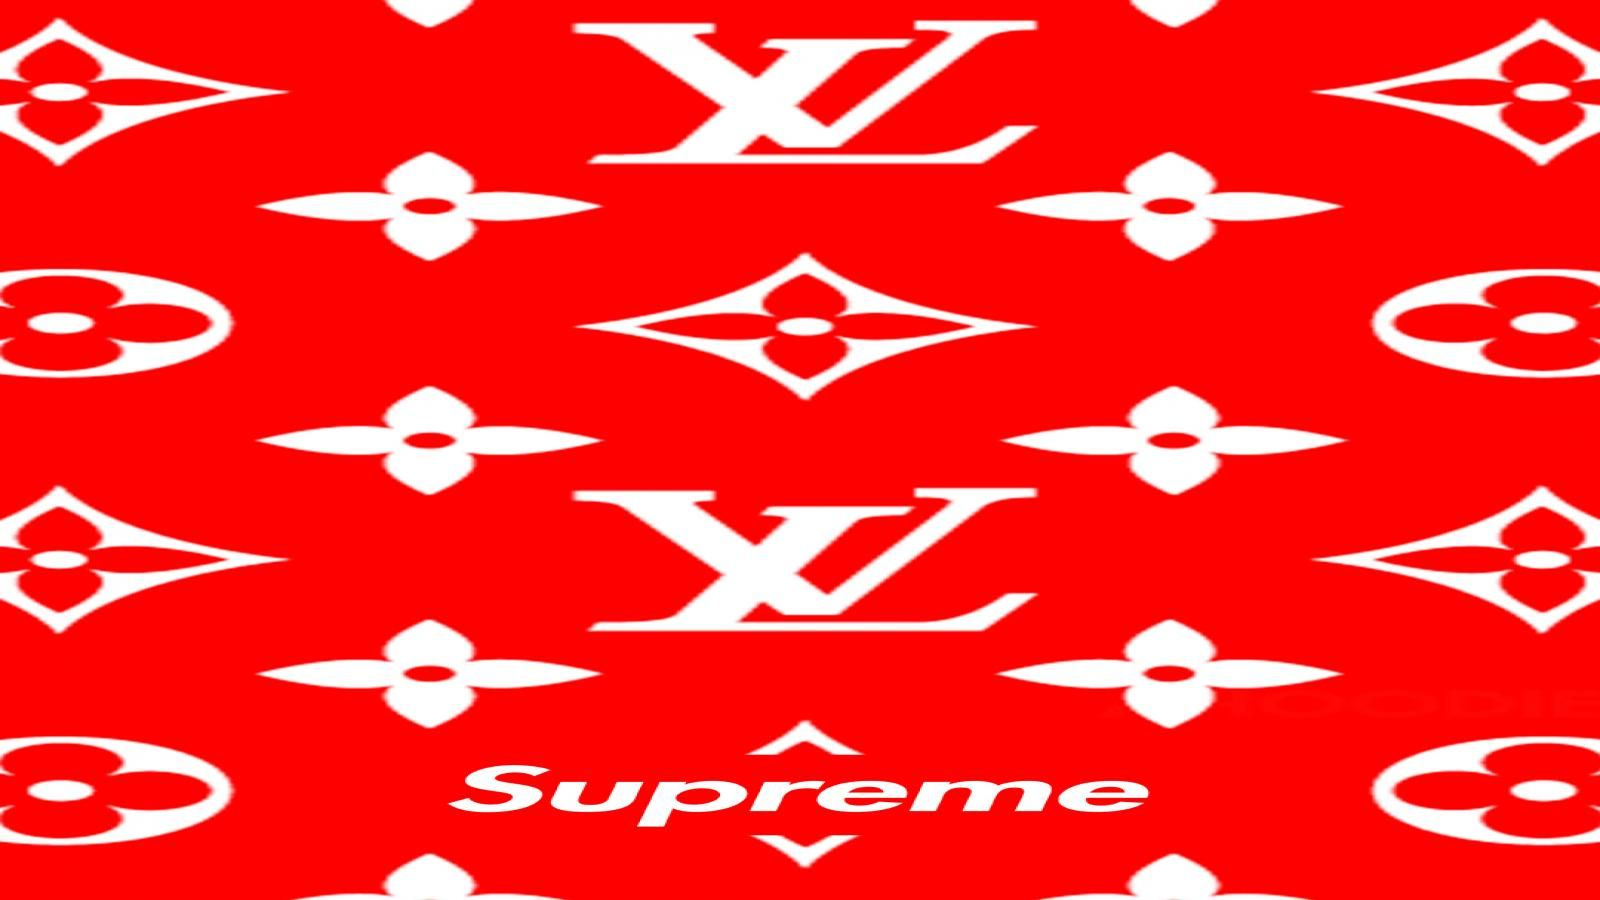 Supreme X Lv Wallpaper 4k Fitrini S Wallpaper